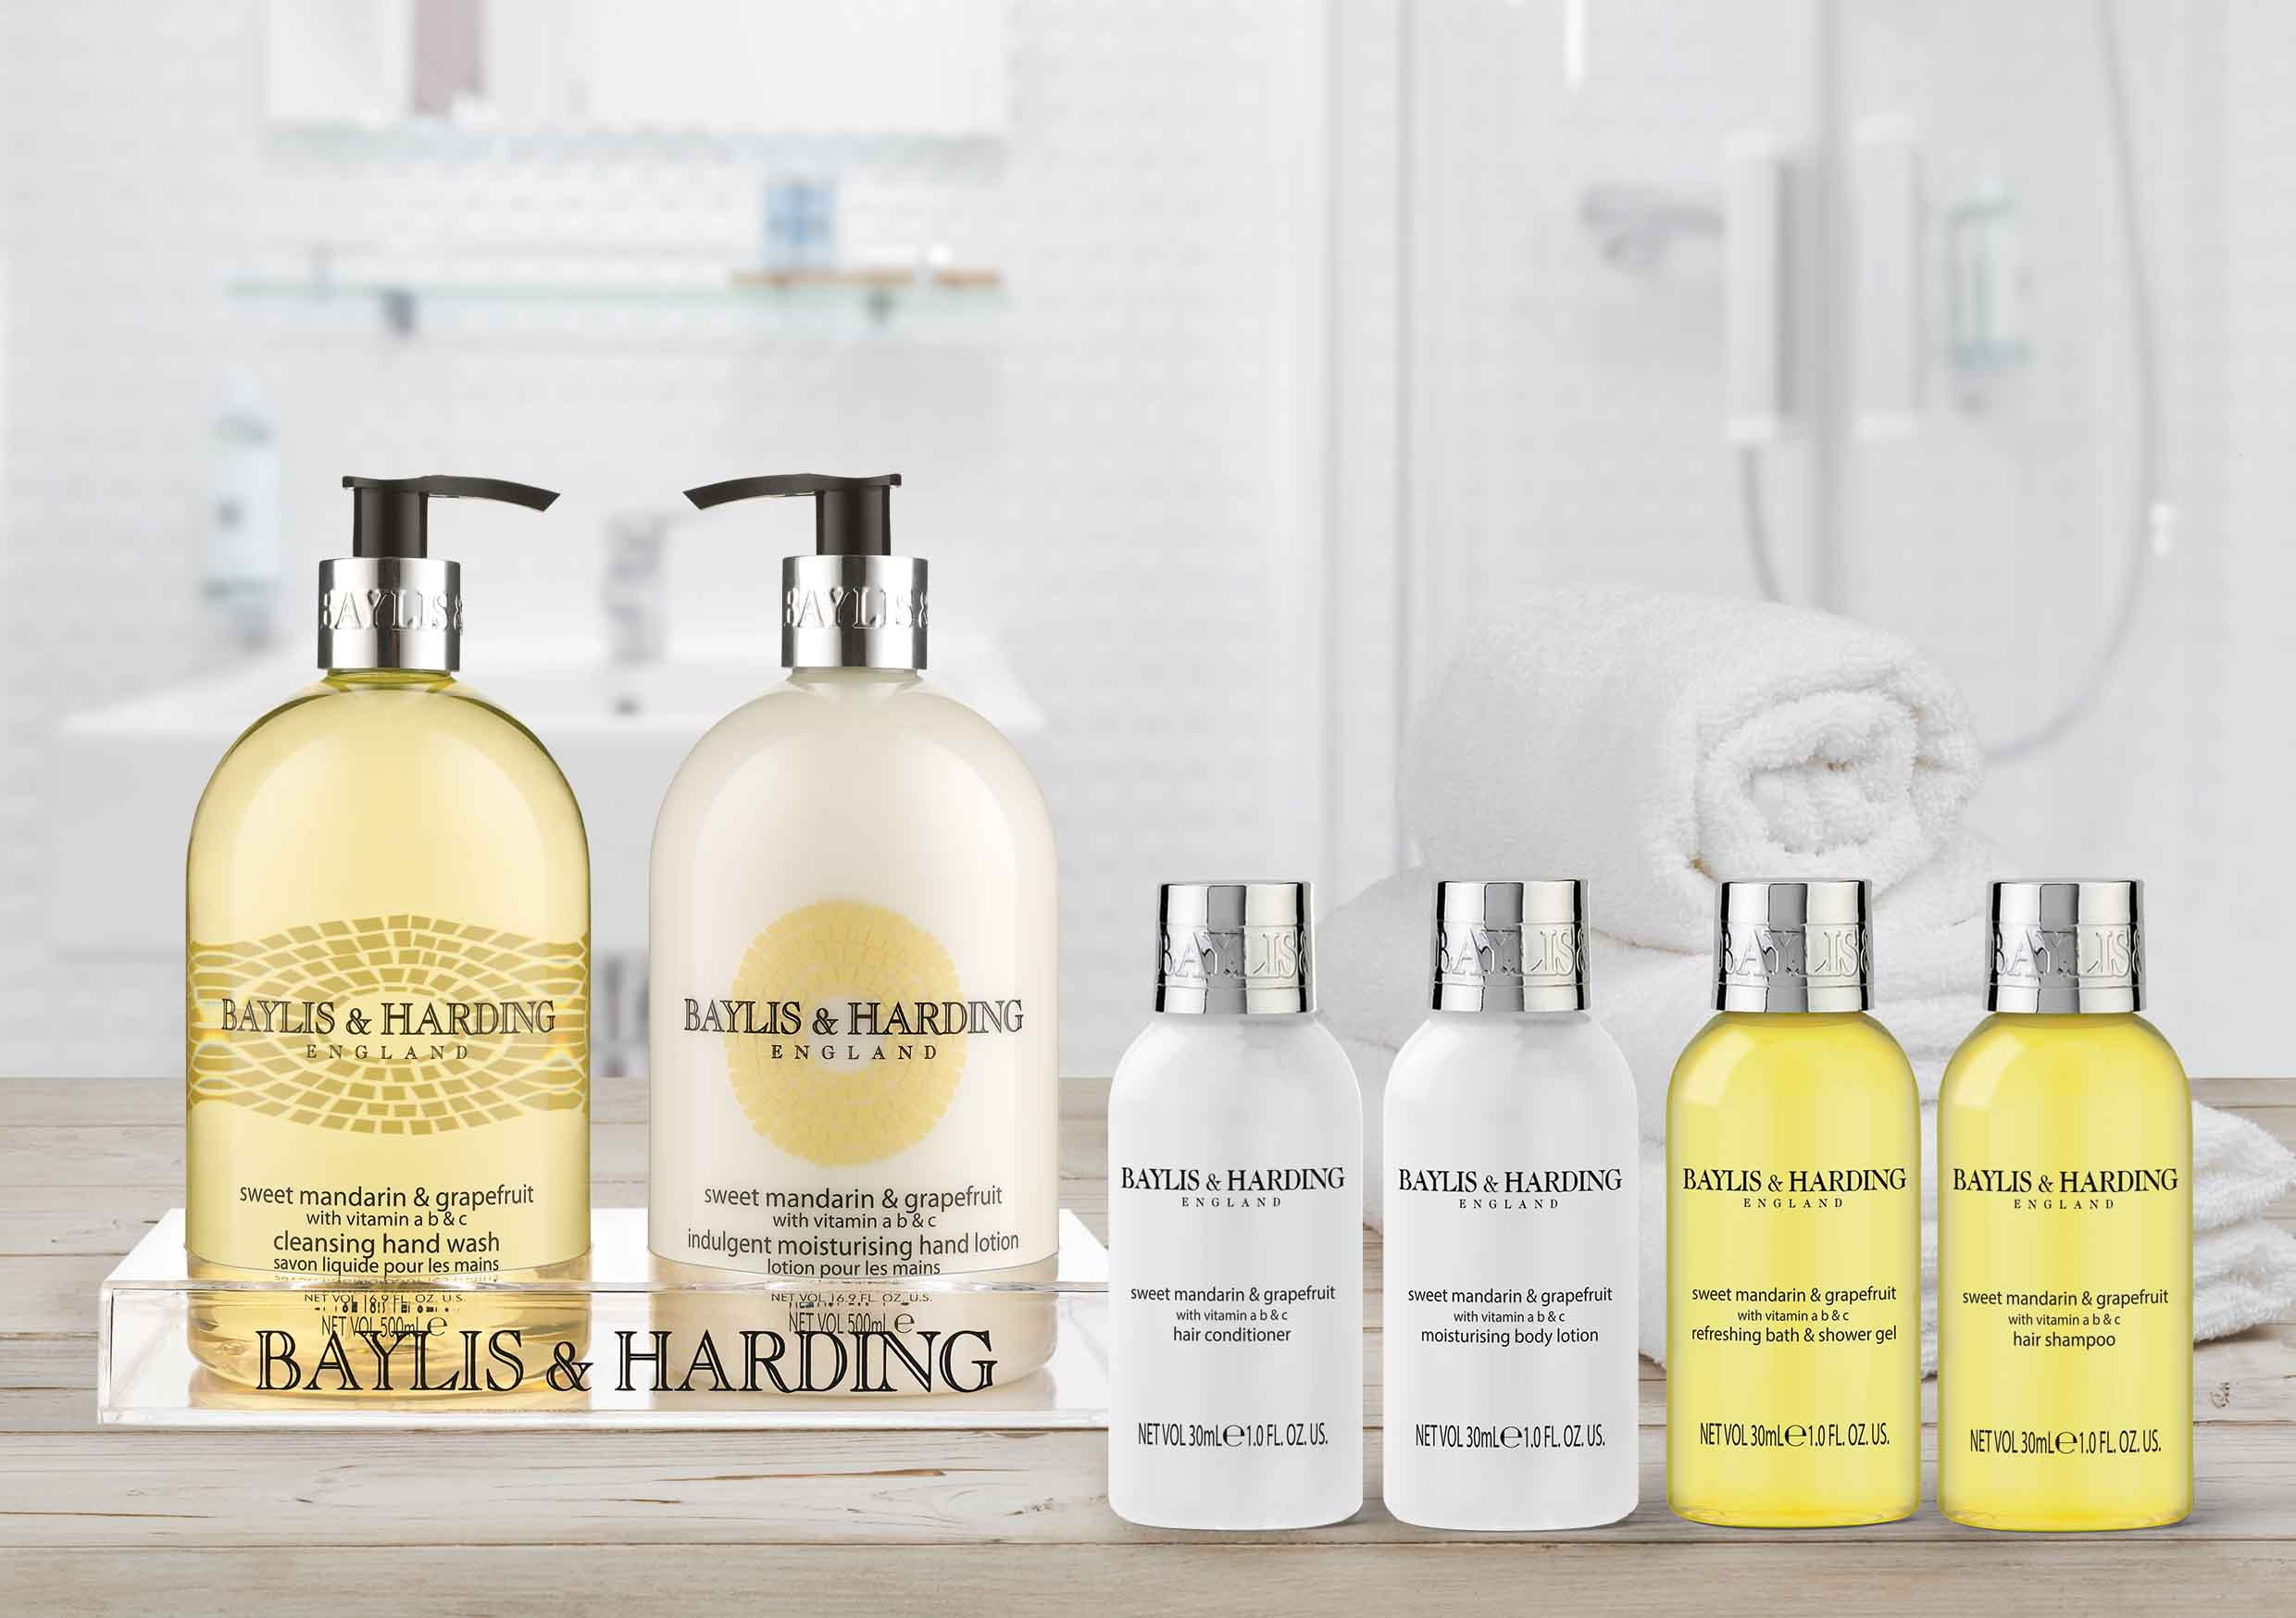 Baylis & Harding Hotel Toiletries